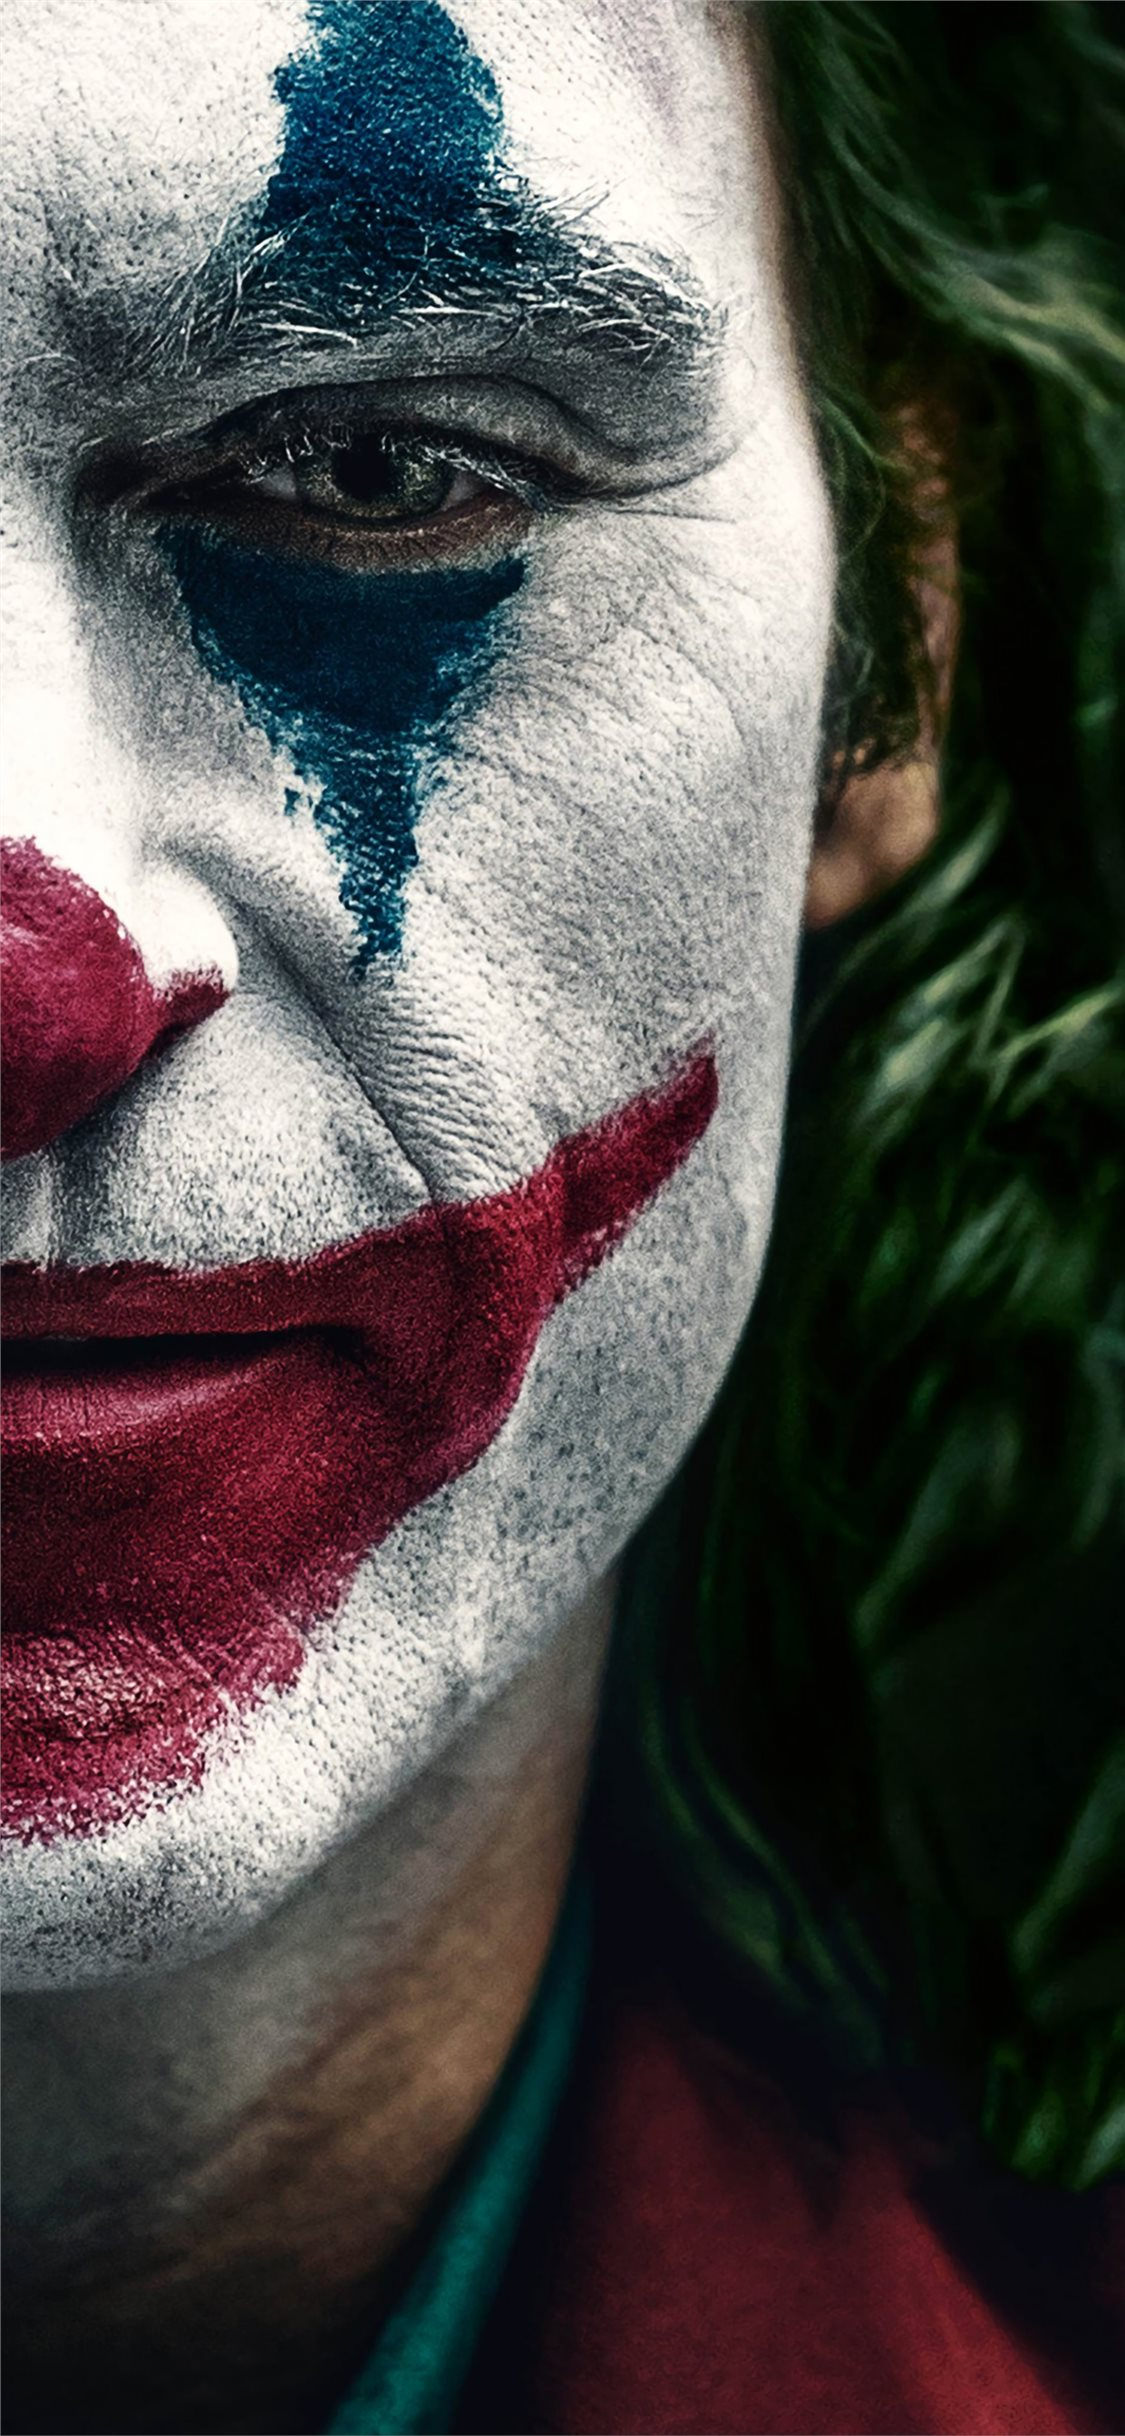 Joker 2019 Movie Iphone X Wallpapers Free Download